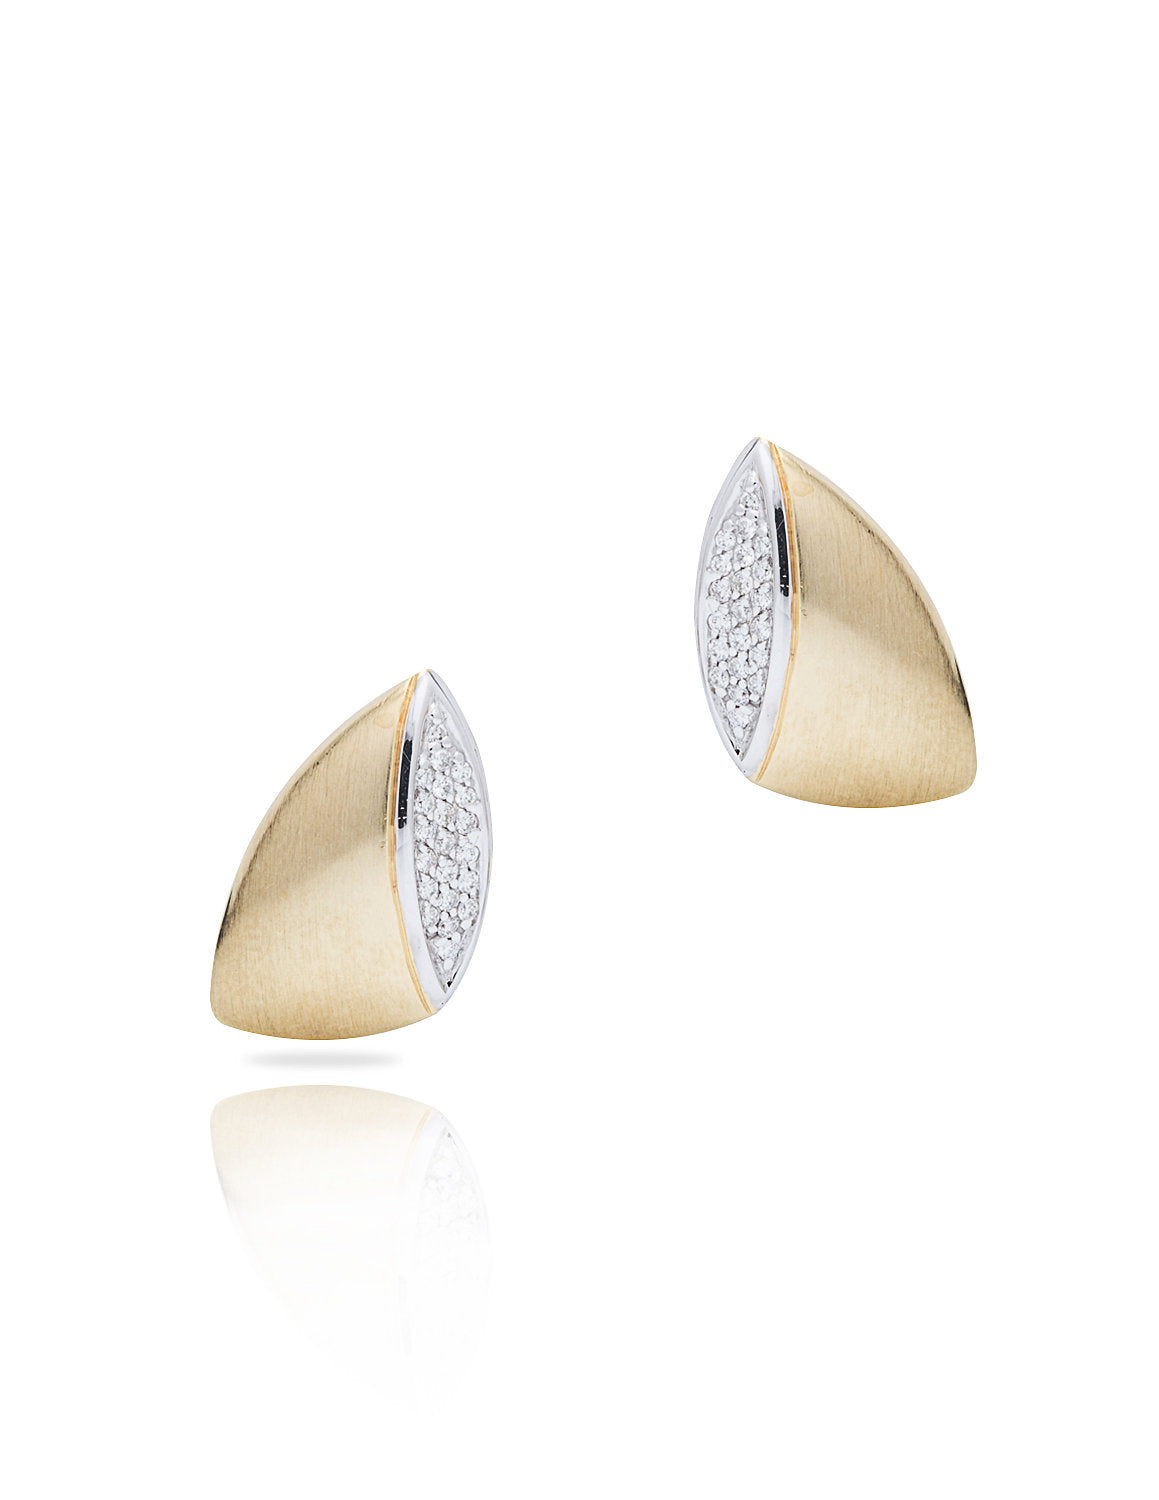 Two-Tone Gold and Diamond Earrings